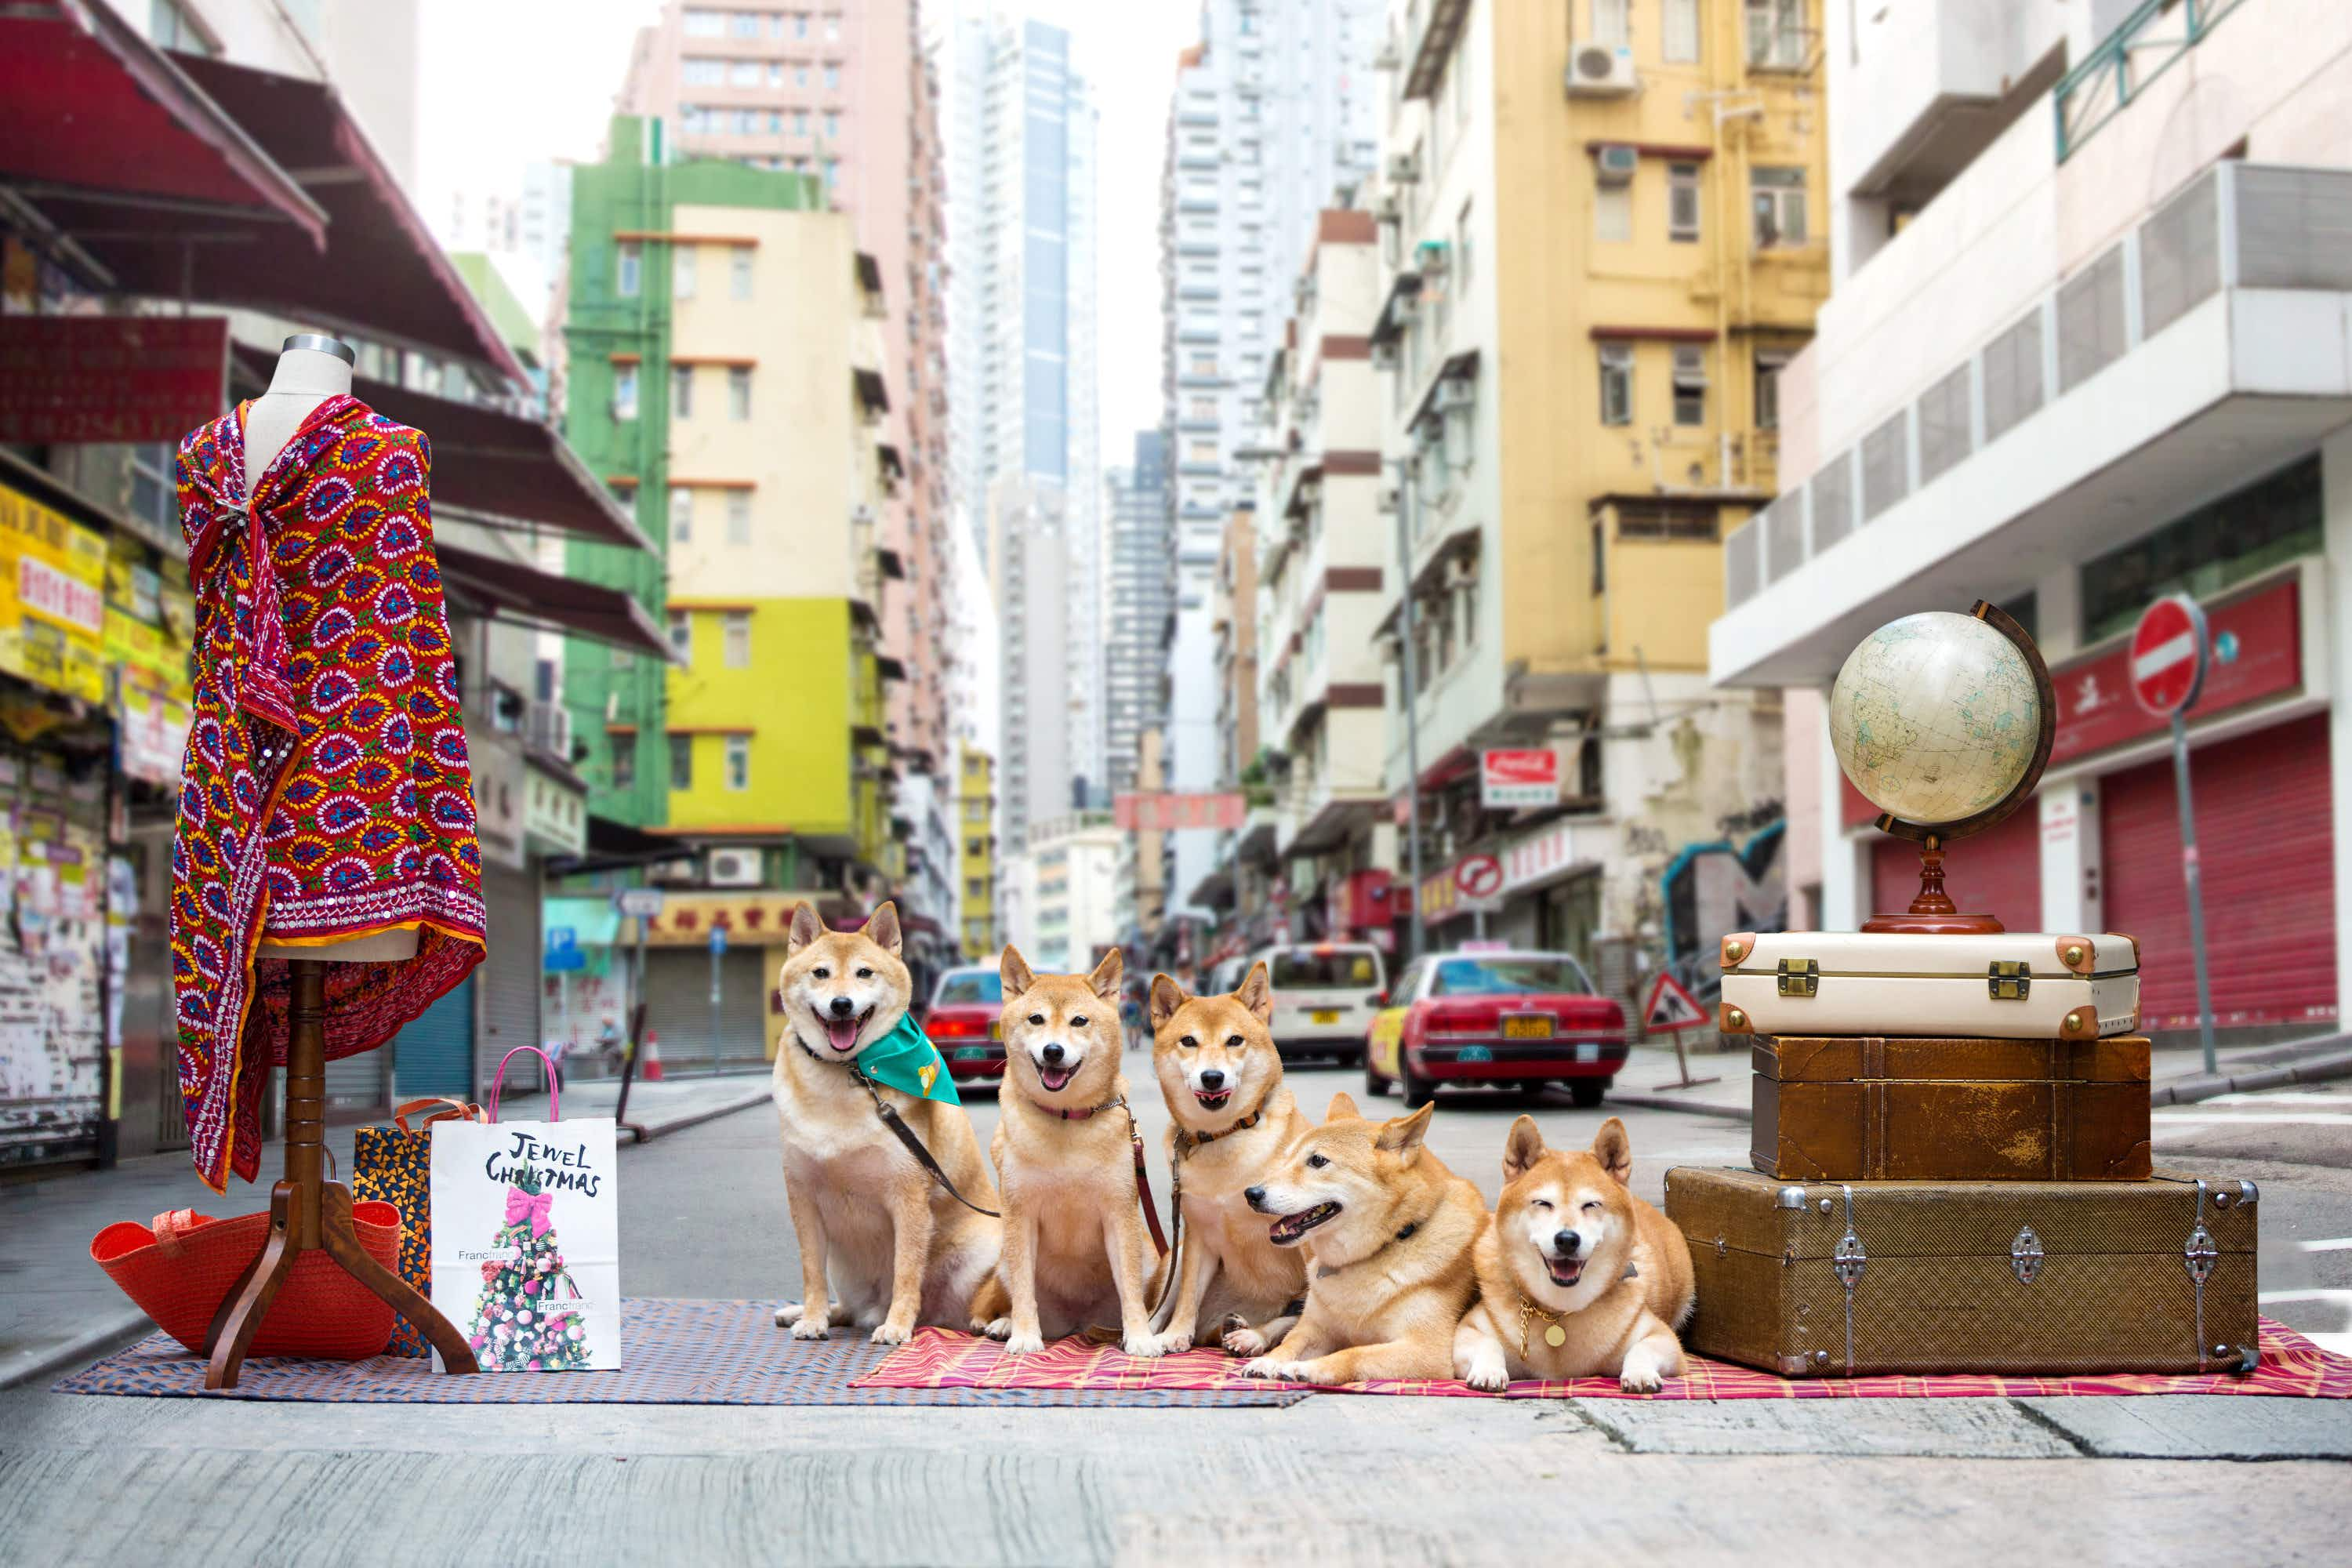 Hong Kong Tourism Board has recruited furry local celebrities to promote this neighbourhood